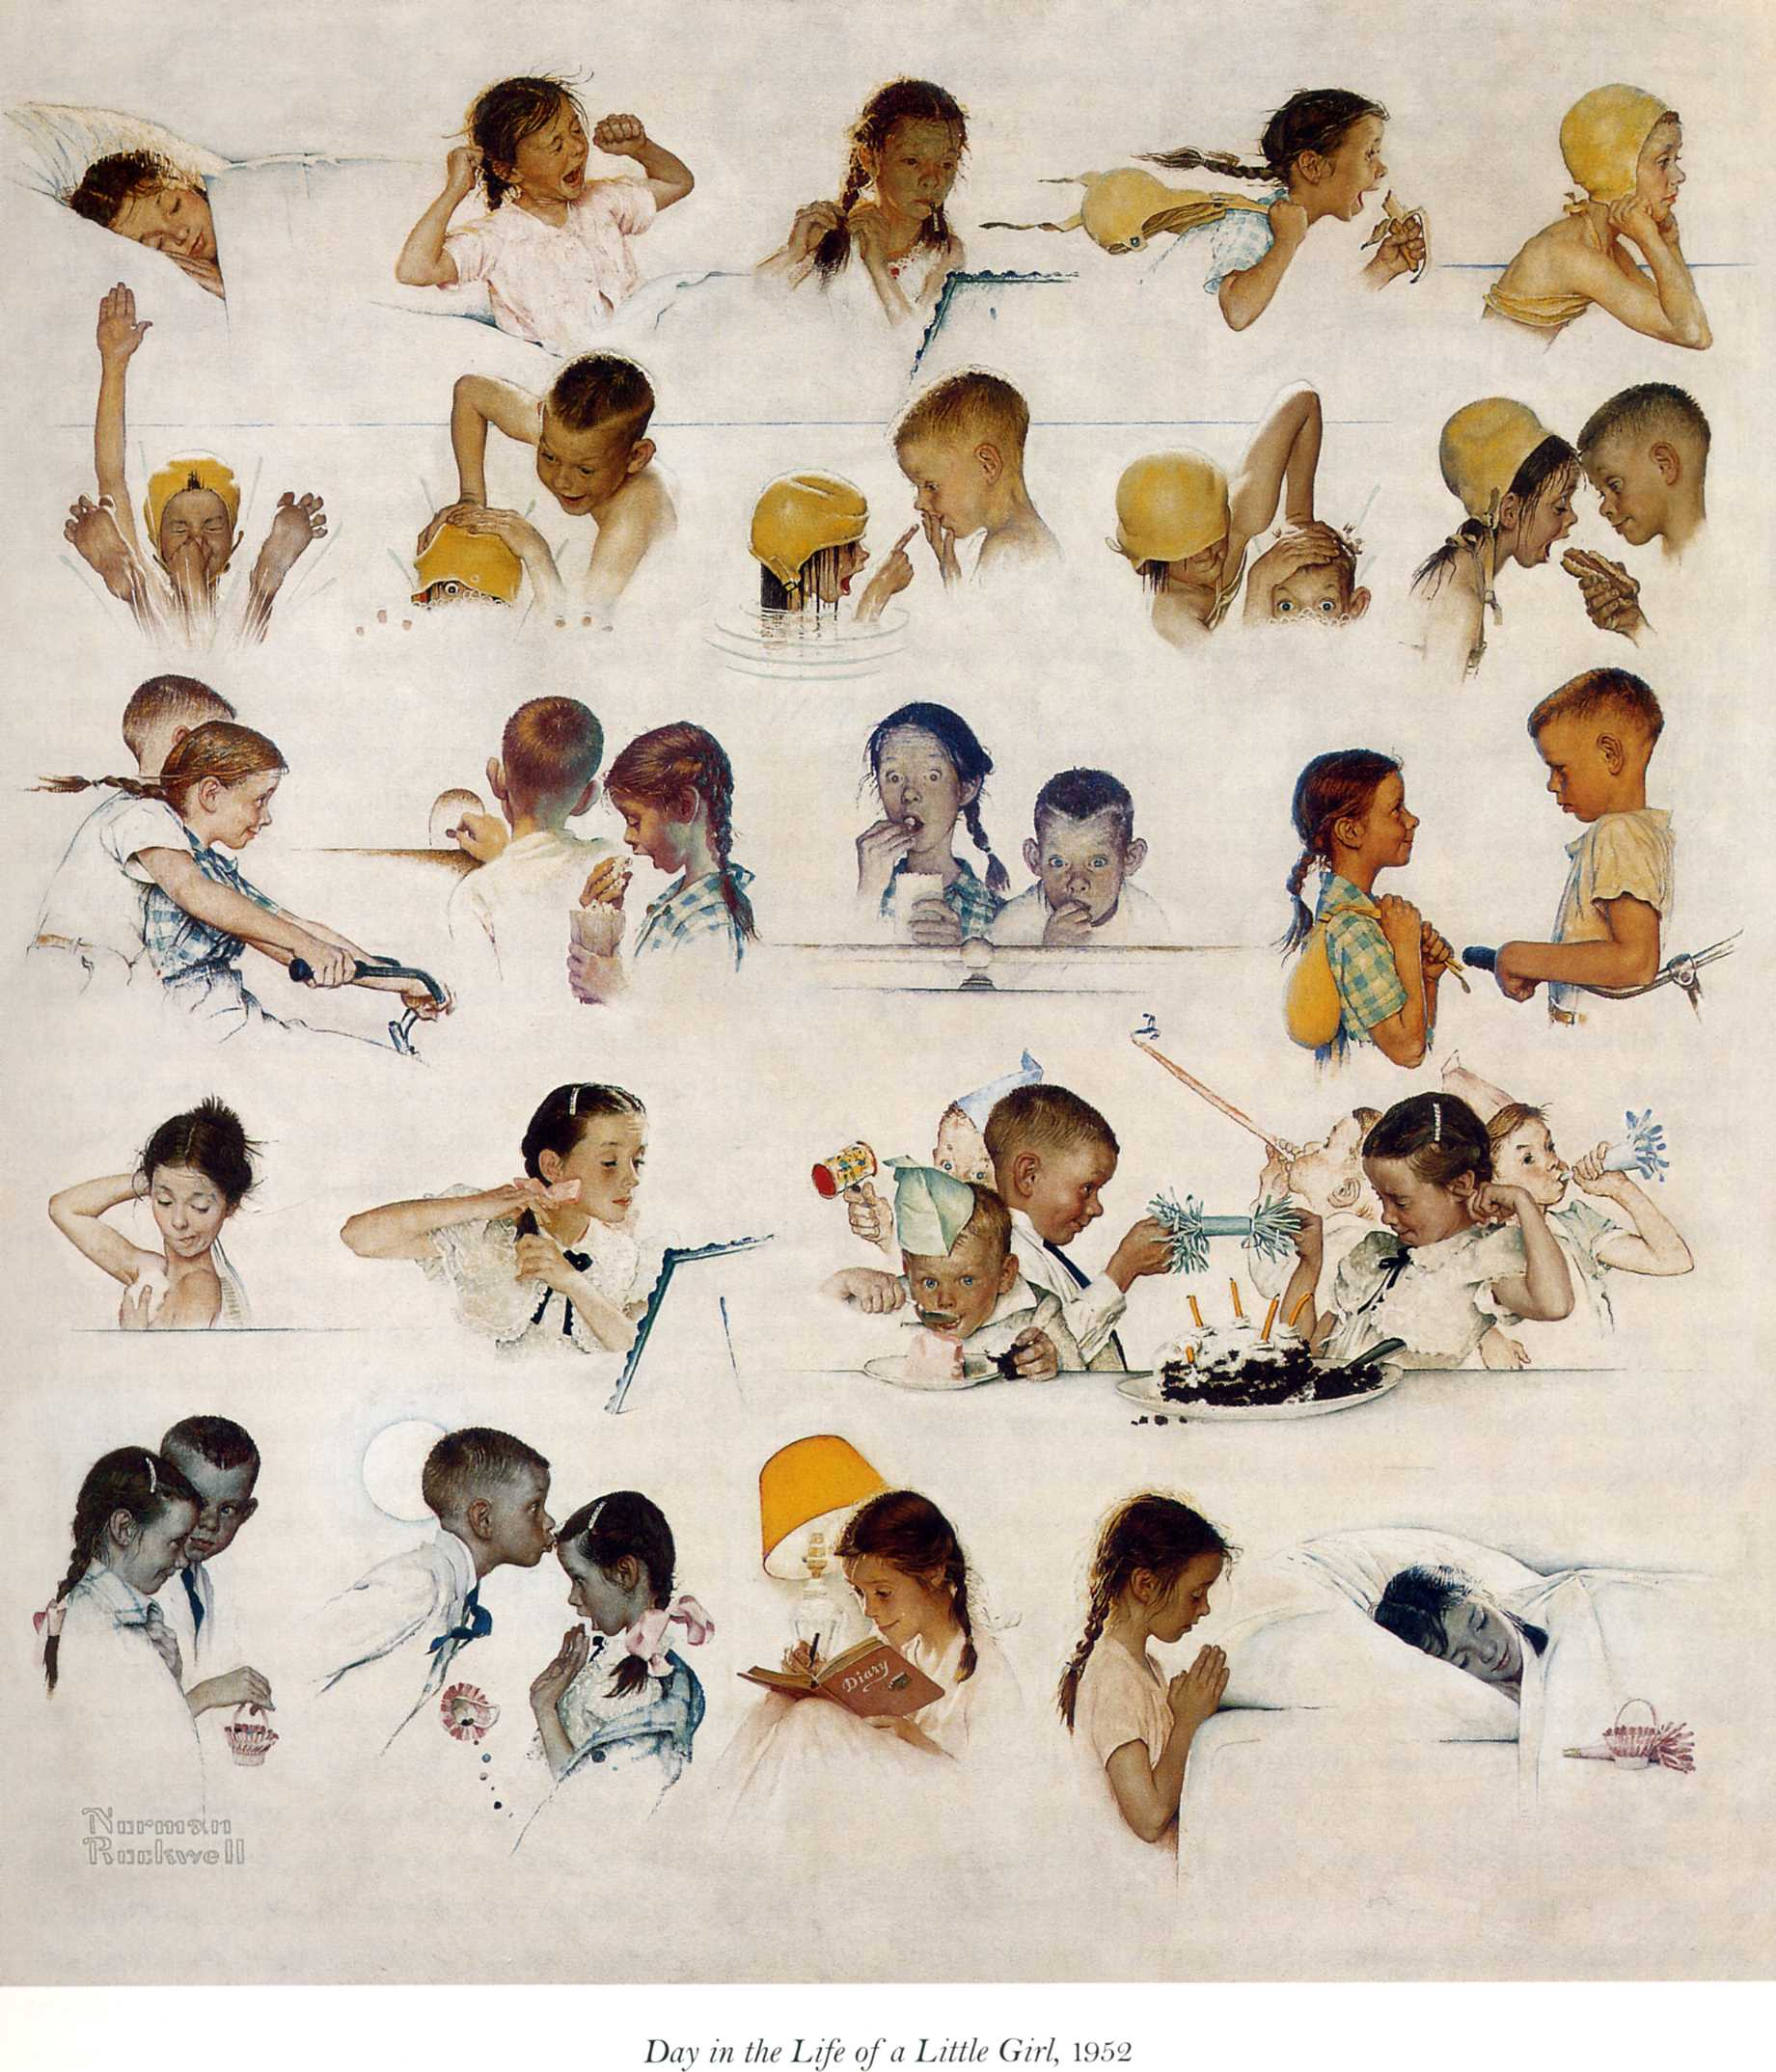 http://uploads0.wikipaintings.org/images/norman-rockwell/day-in-the-life-of-a-little-girl.jpg